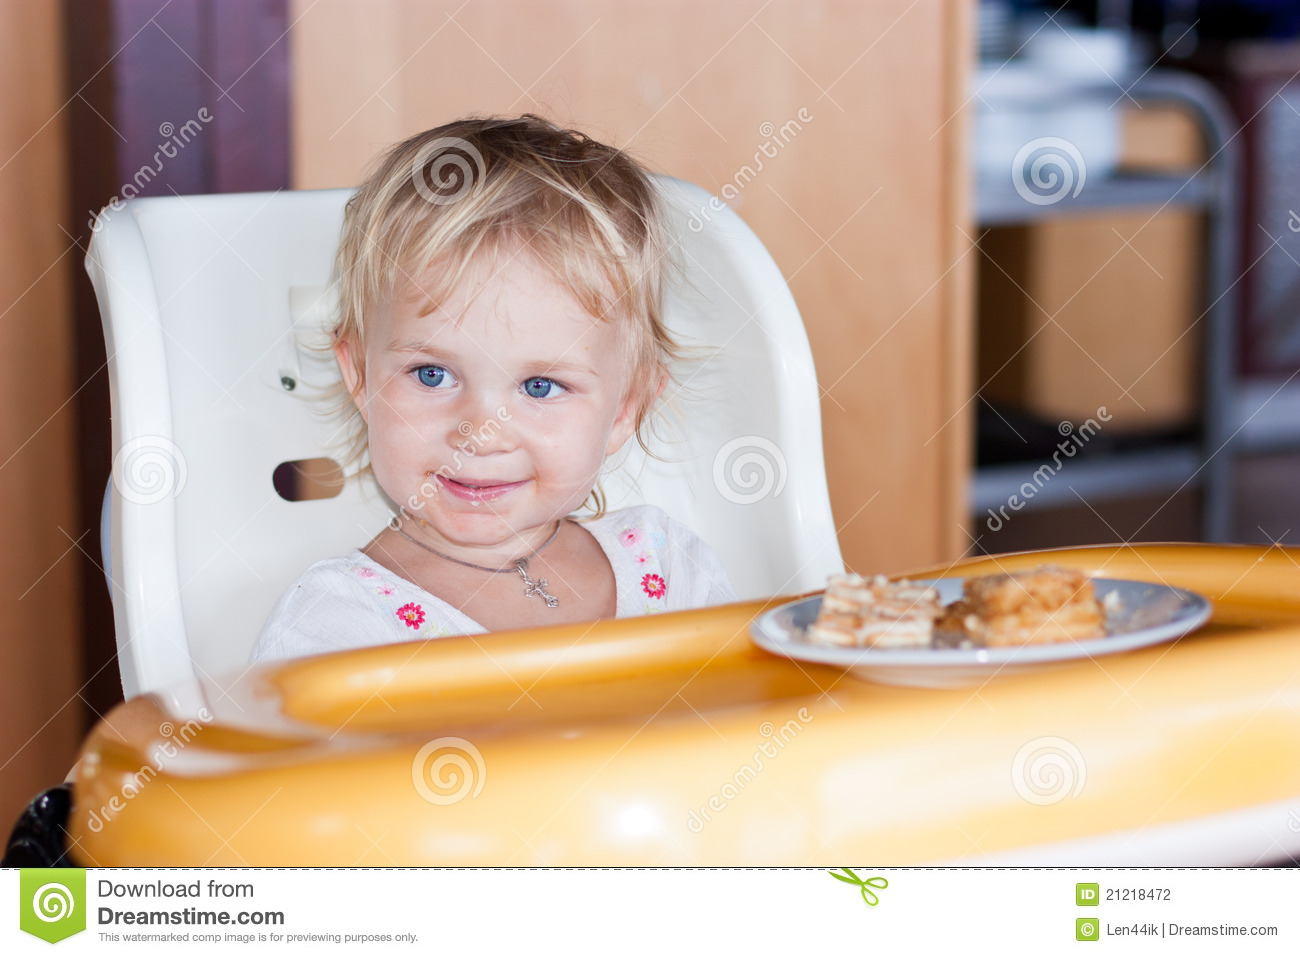 Baby Eating Cake Clipart : Adorable Baby Eating Cake In A Chair Stock Photography ...